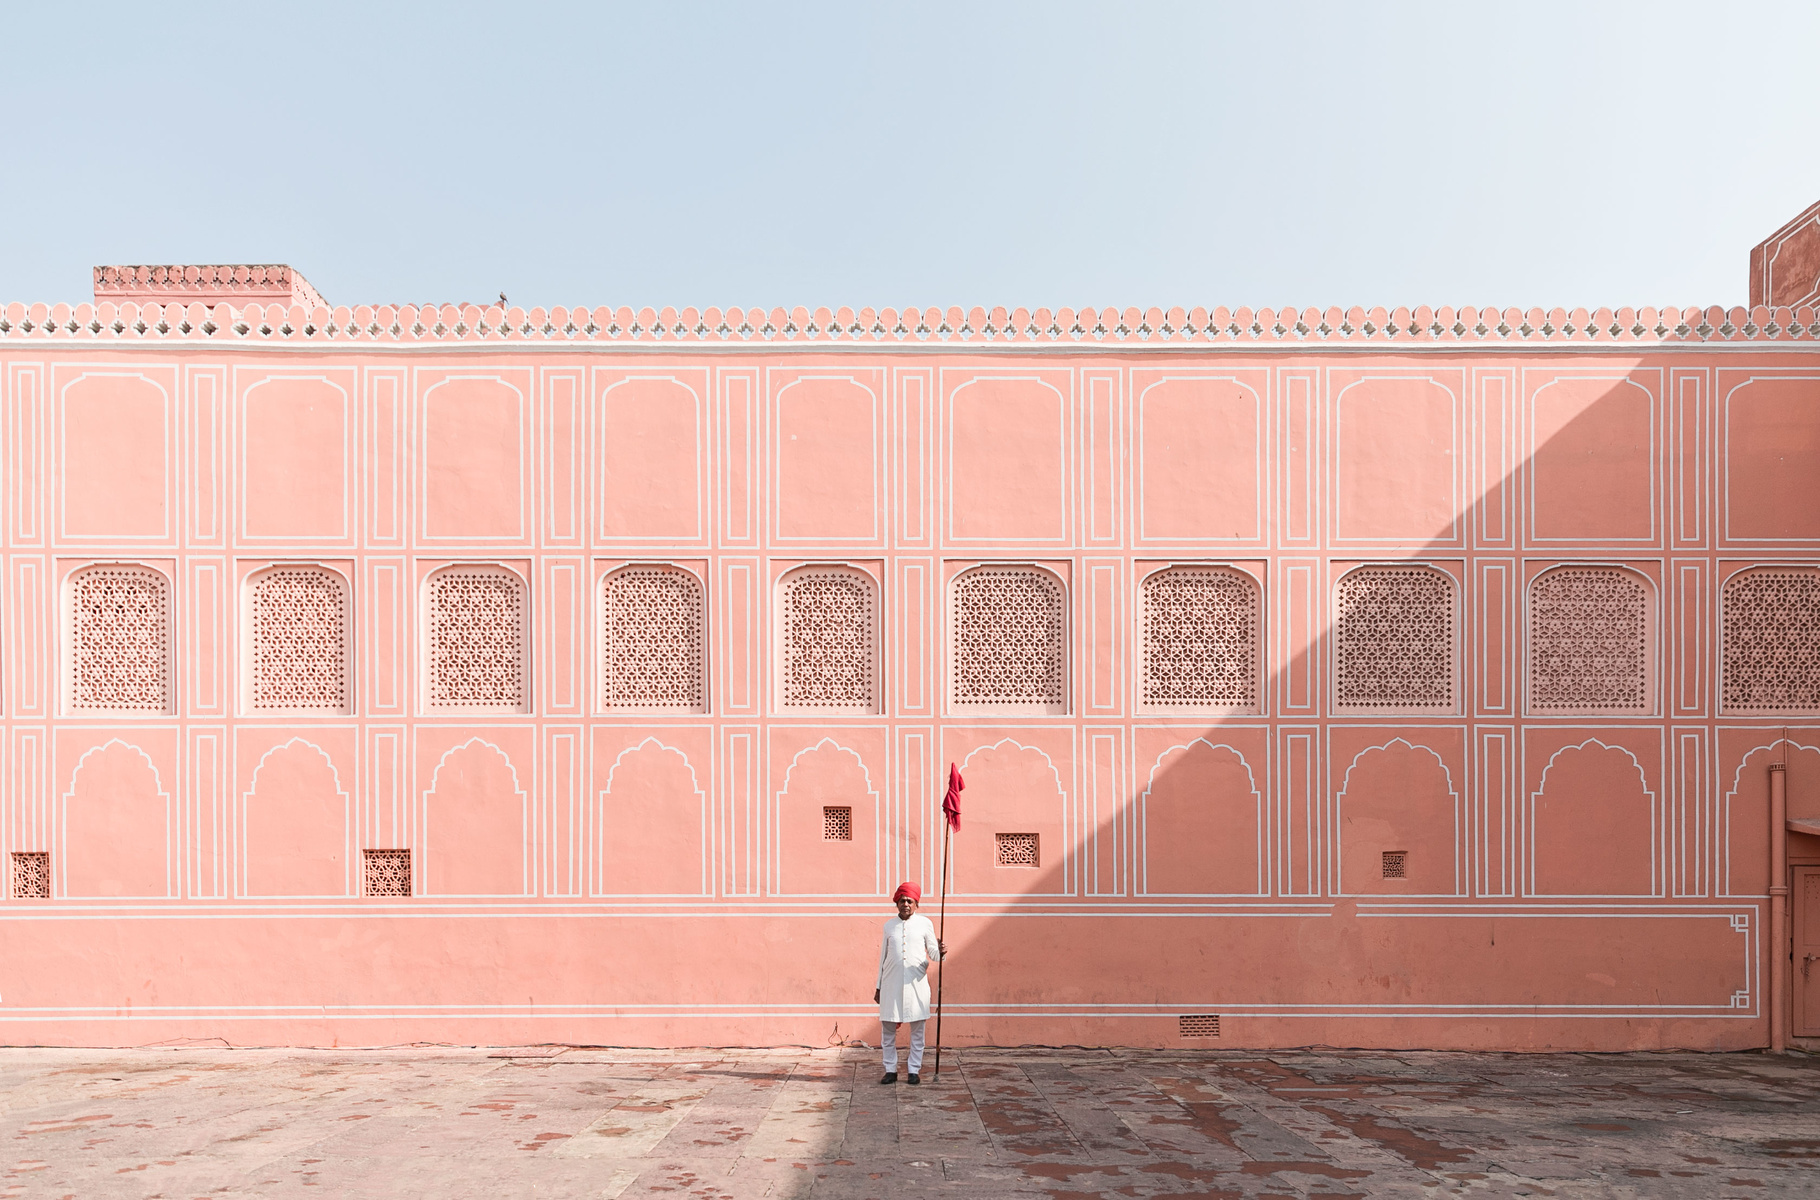 jaipur india pastel pink architecture photography.jpg